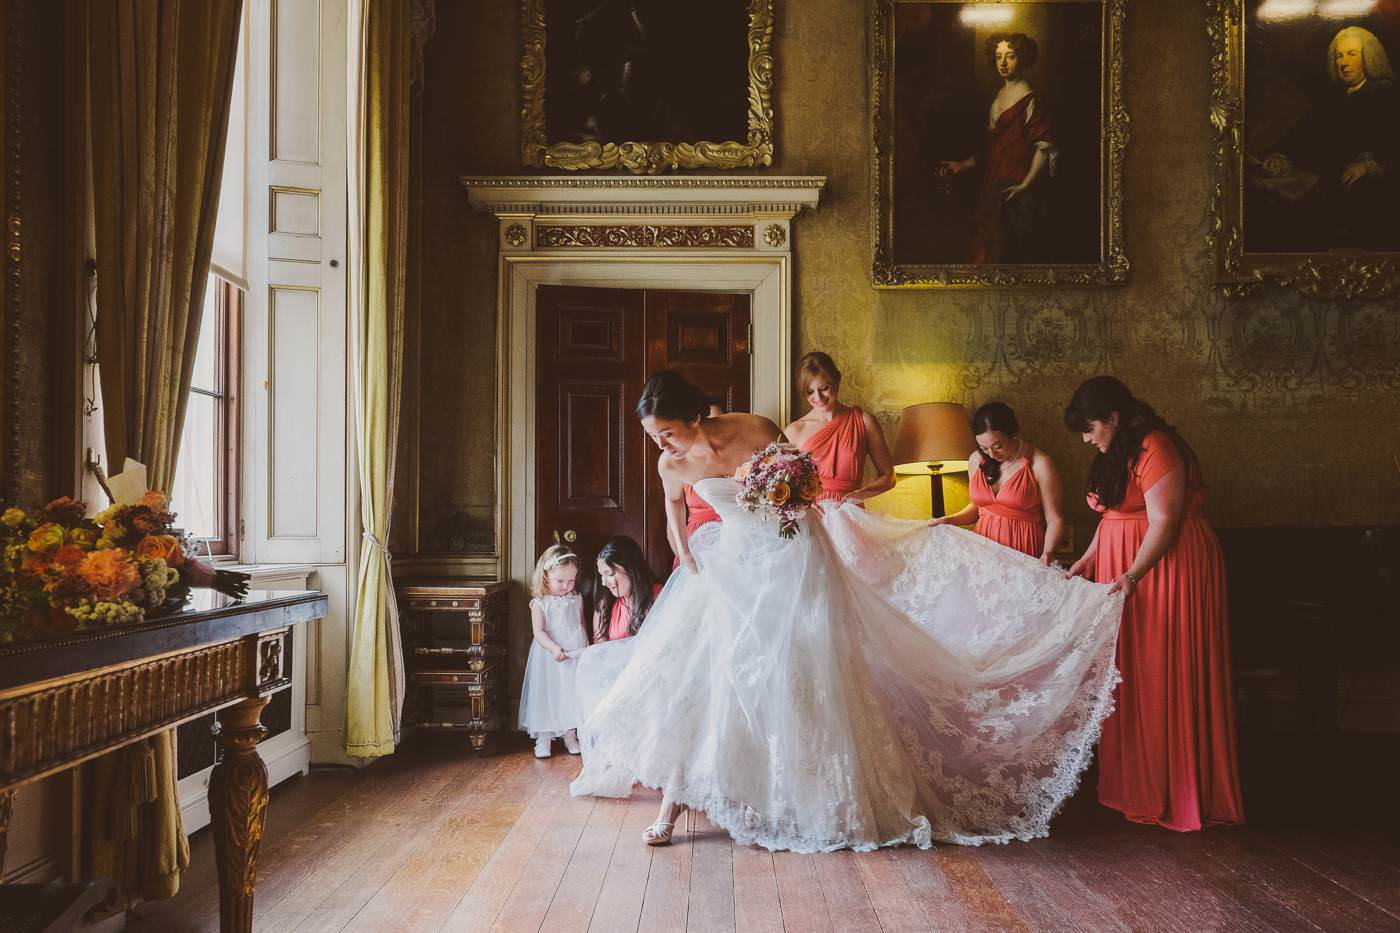 The wedding of Christine and Michael in Syon House, London.